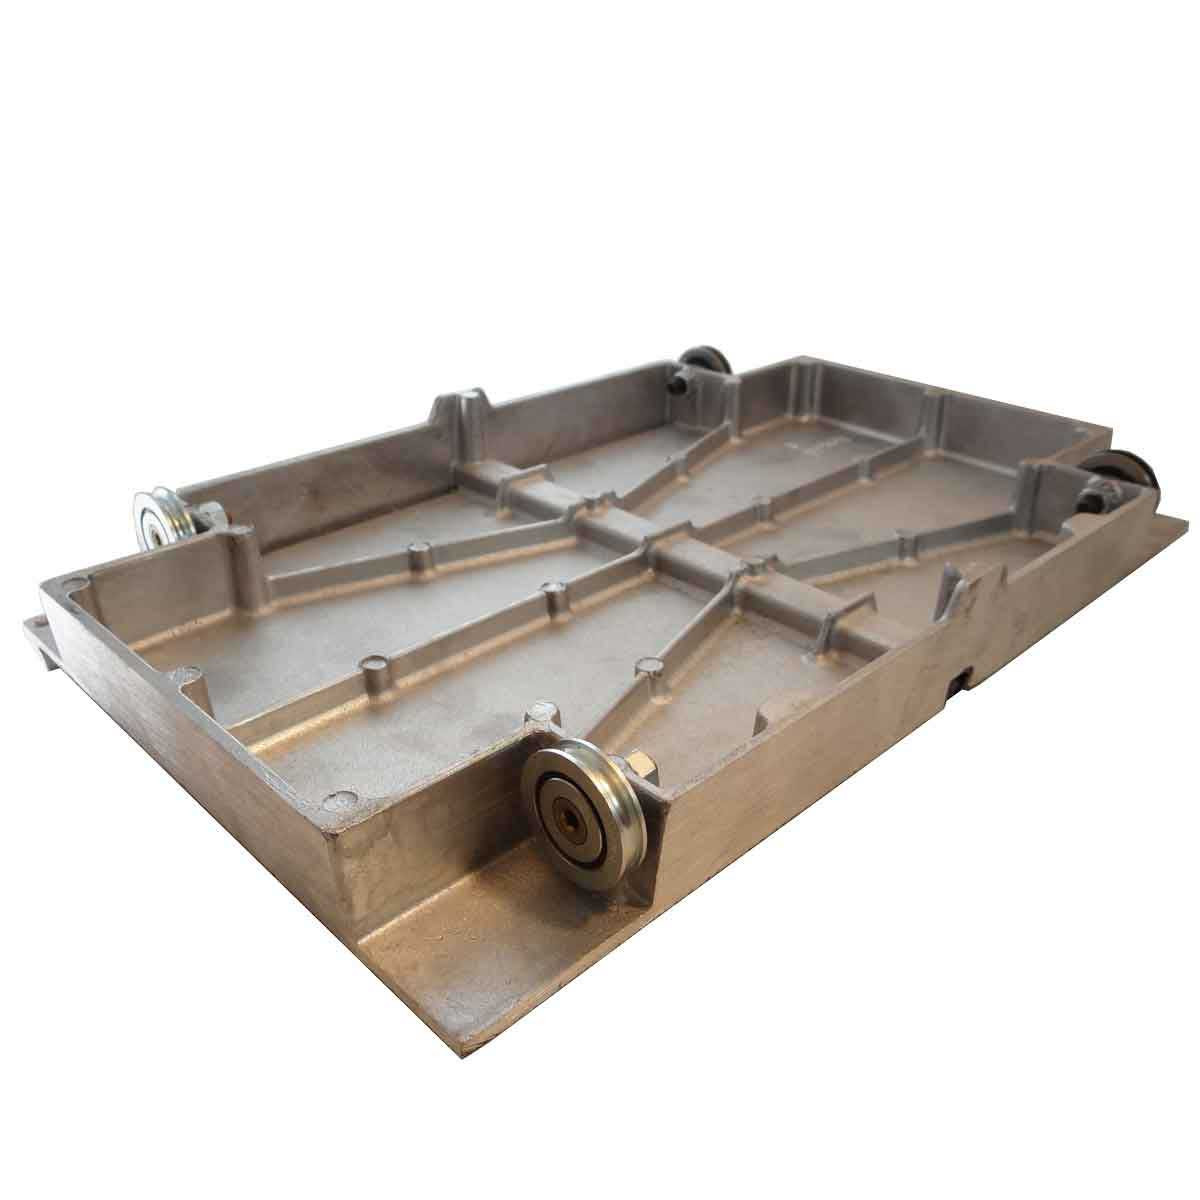 Carriage Tray For Husqvarna Tile Saws Contractors Direct